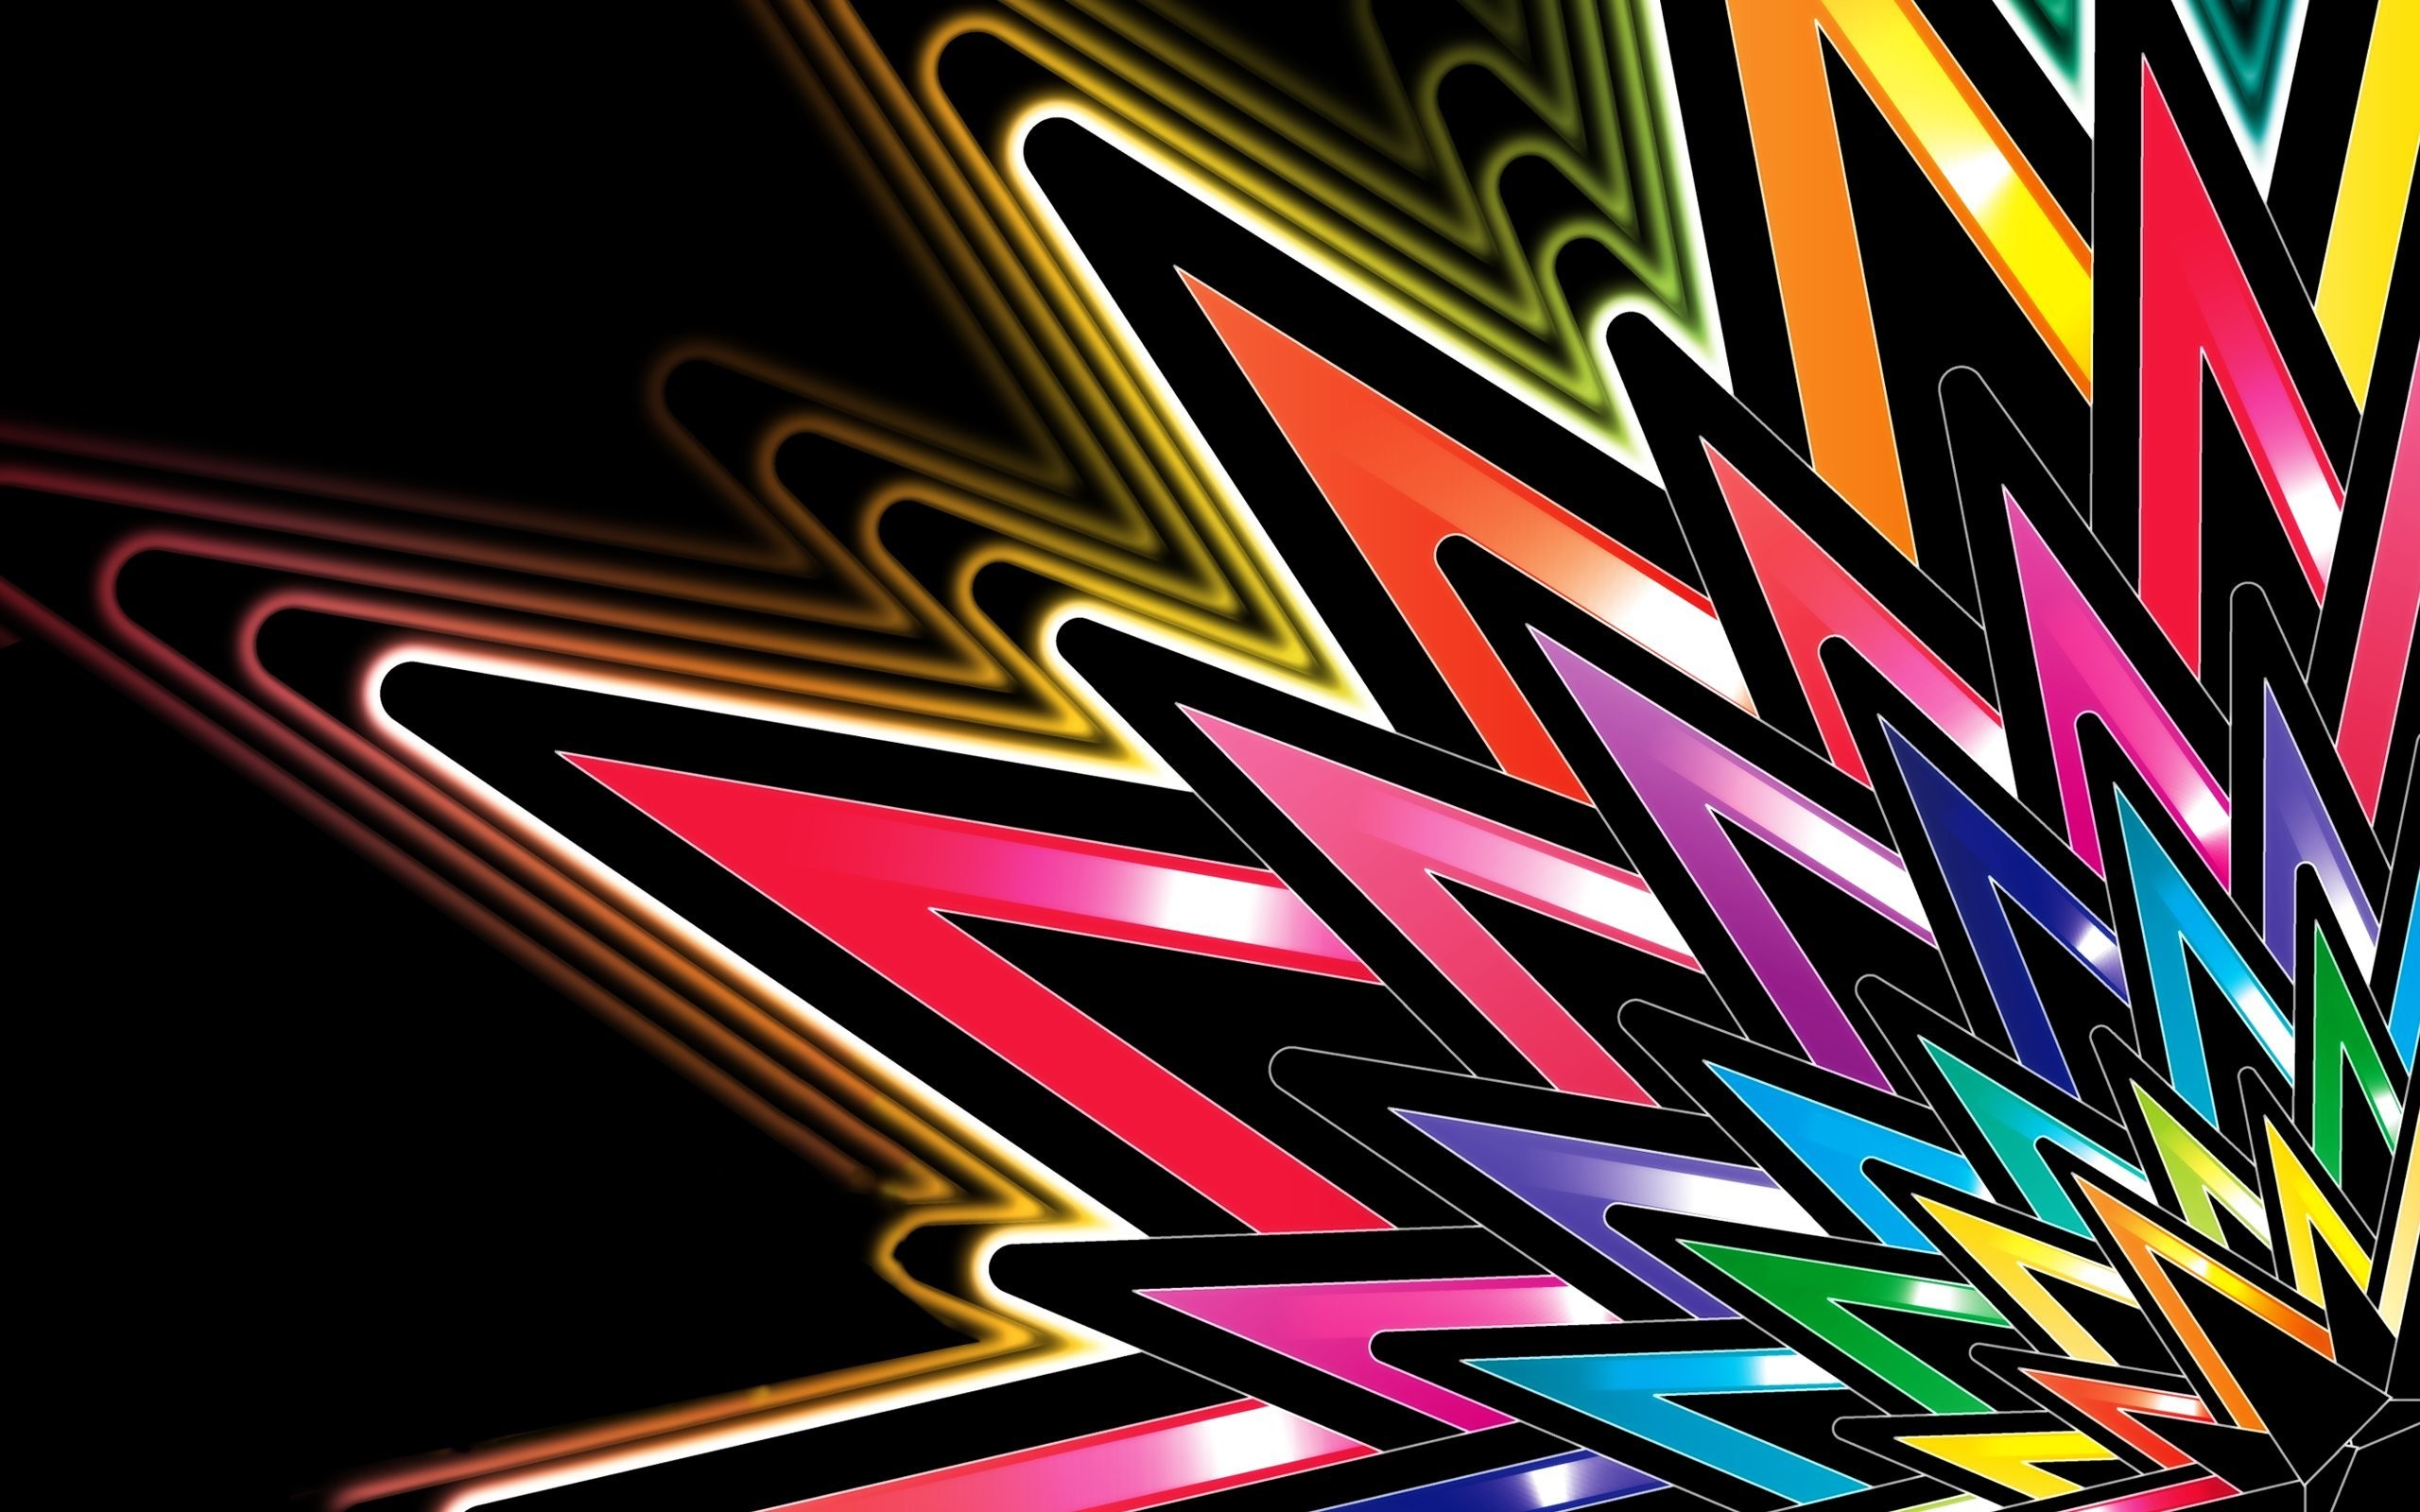 Colorful Abstract Art | Bright Colors Abstract 2560×1600 Wallpaper